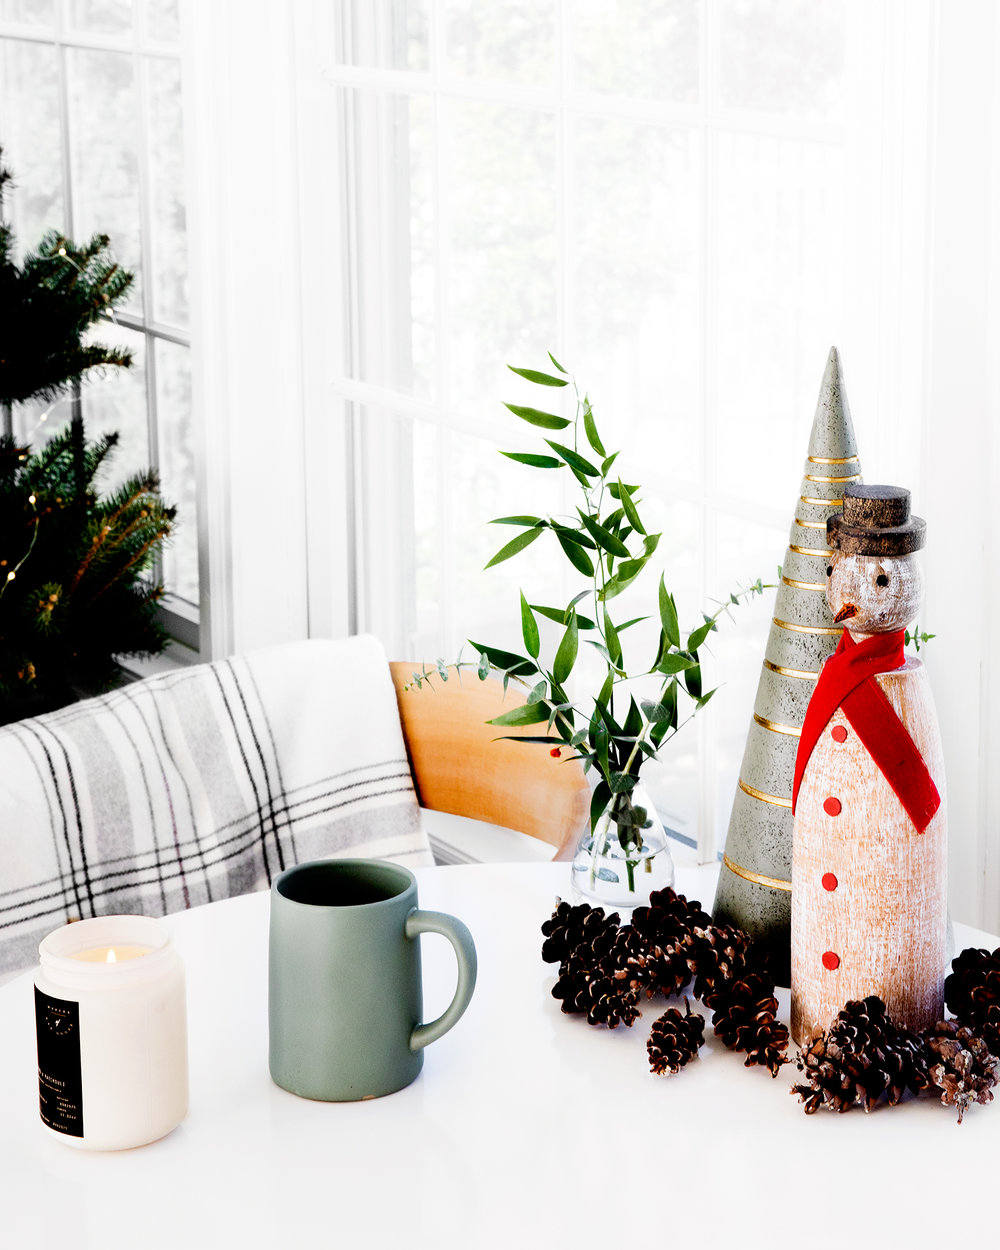 ABHSS_JG_HolidayDecor_0073.jpg